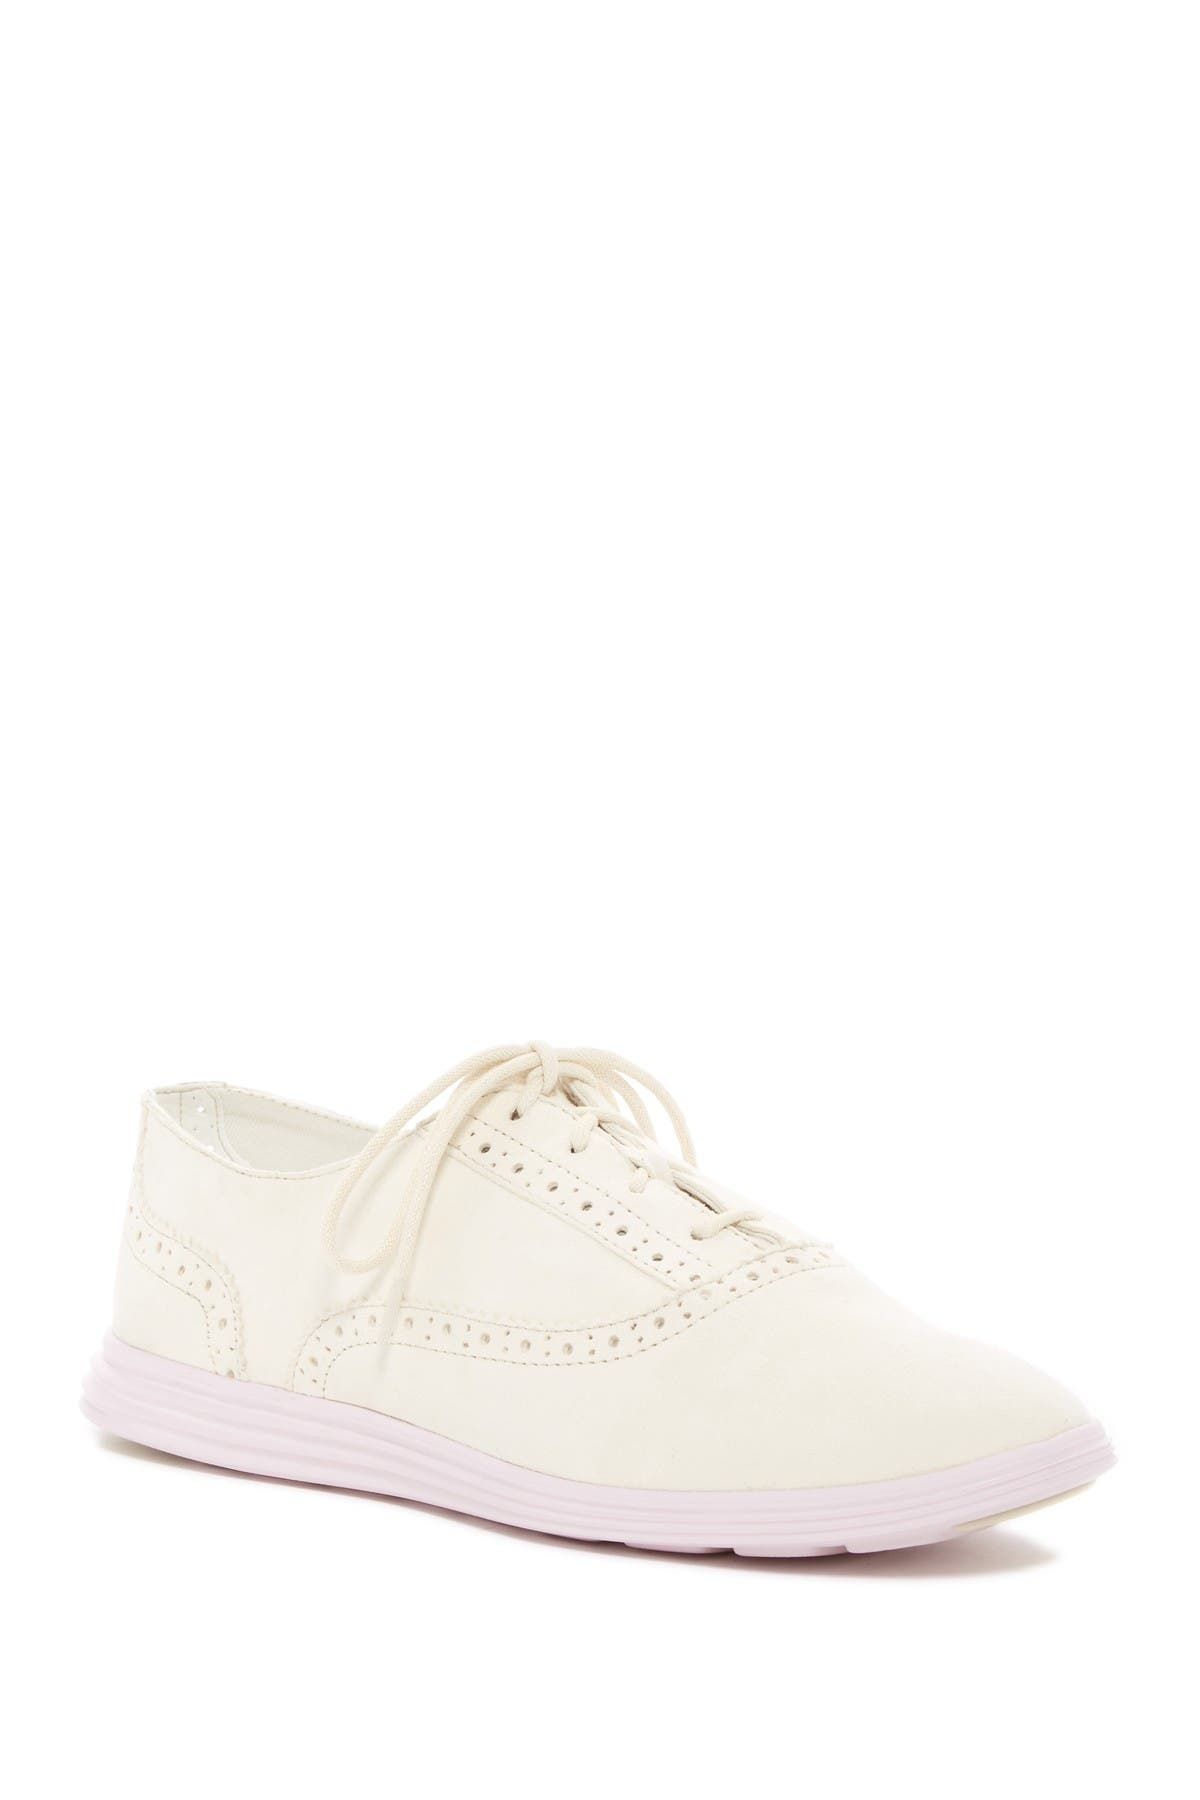 Image of Cole Haan Ella Grand Oxford II Shoe